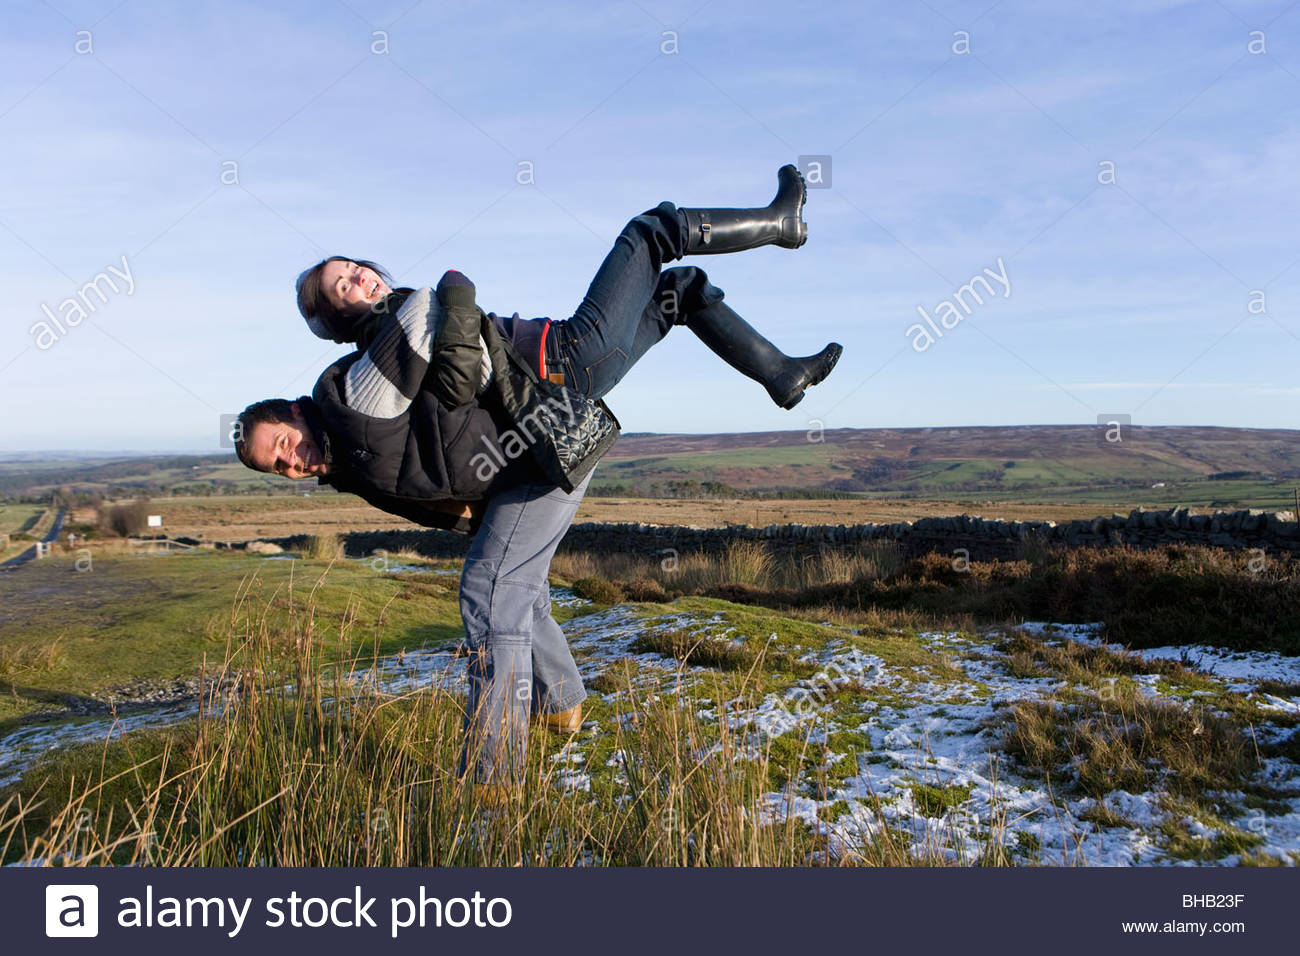 Playful couple in rural field Photo Stock